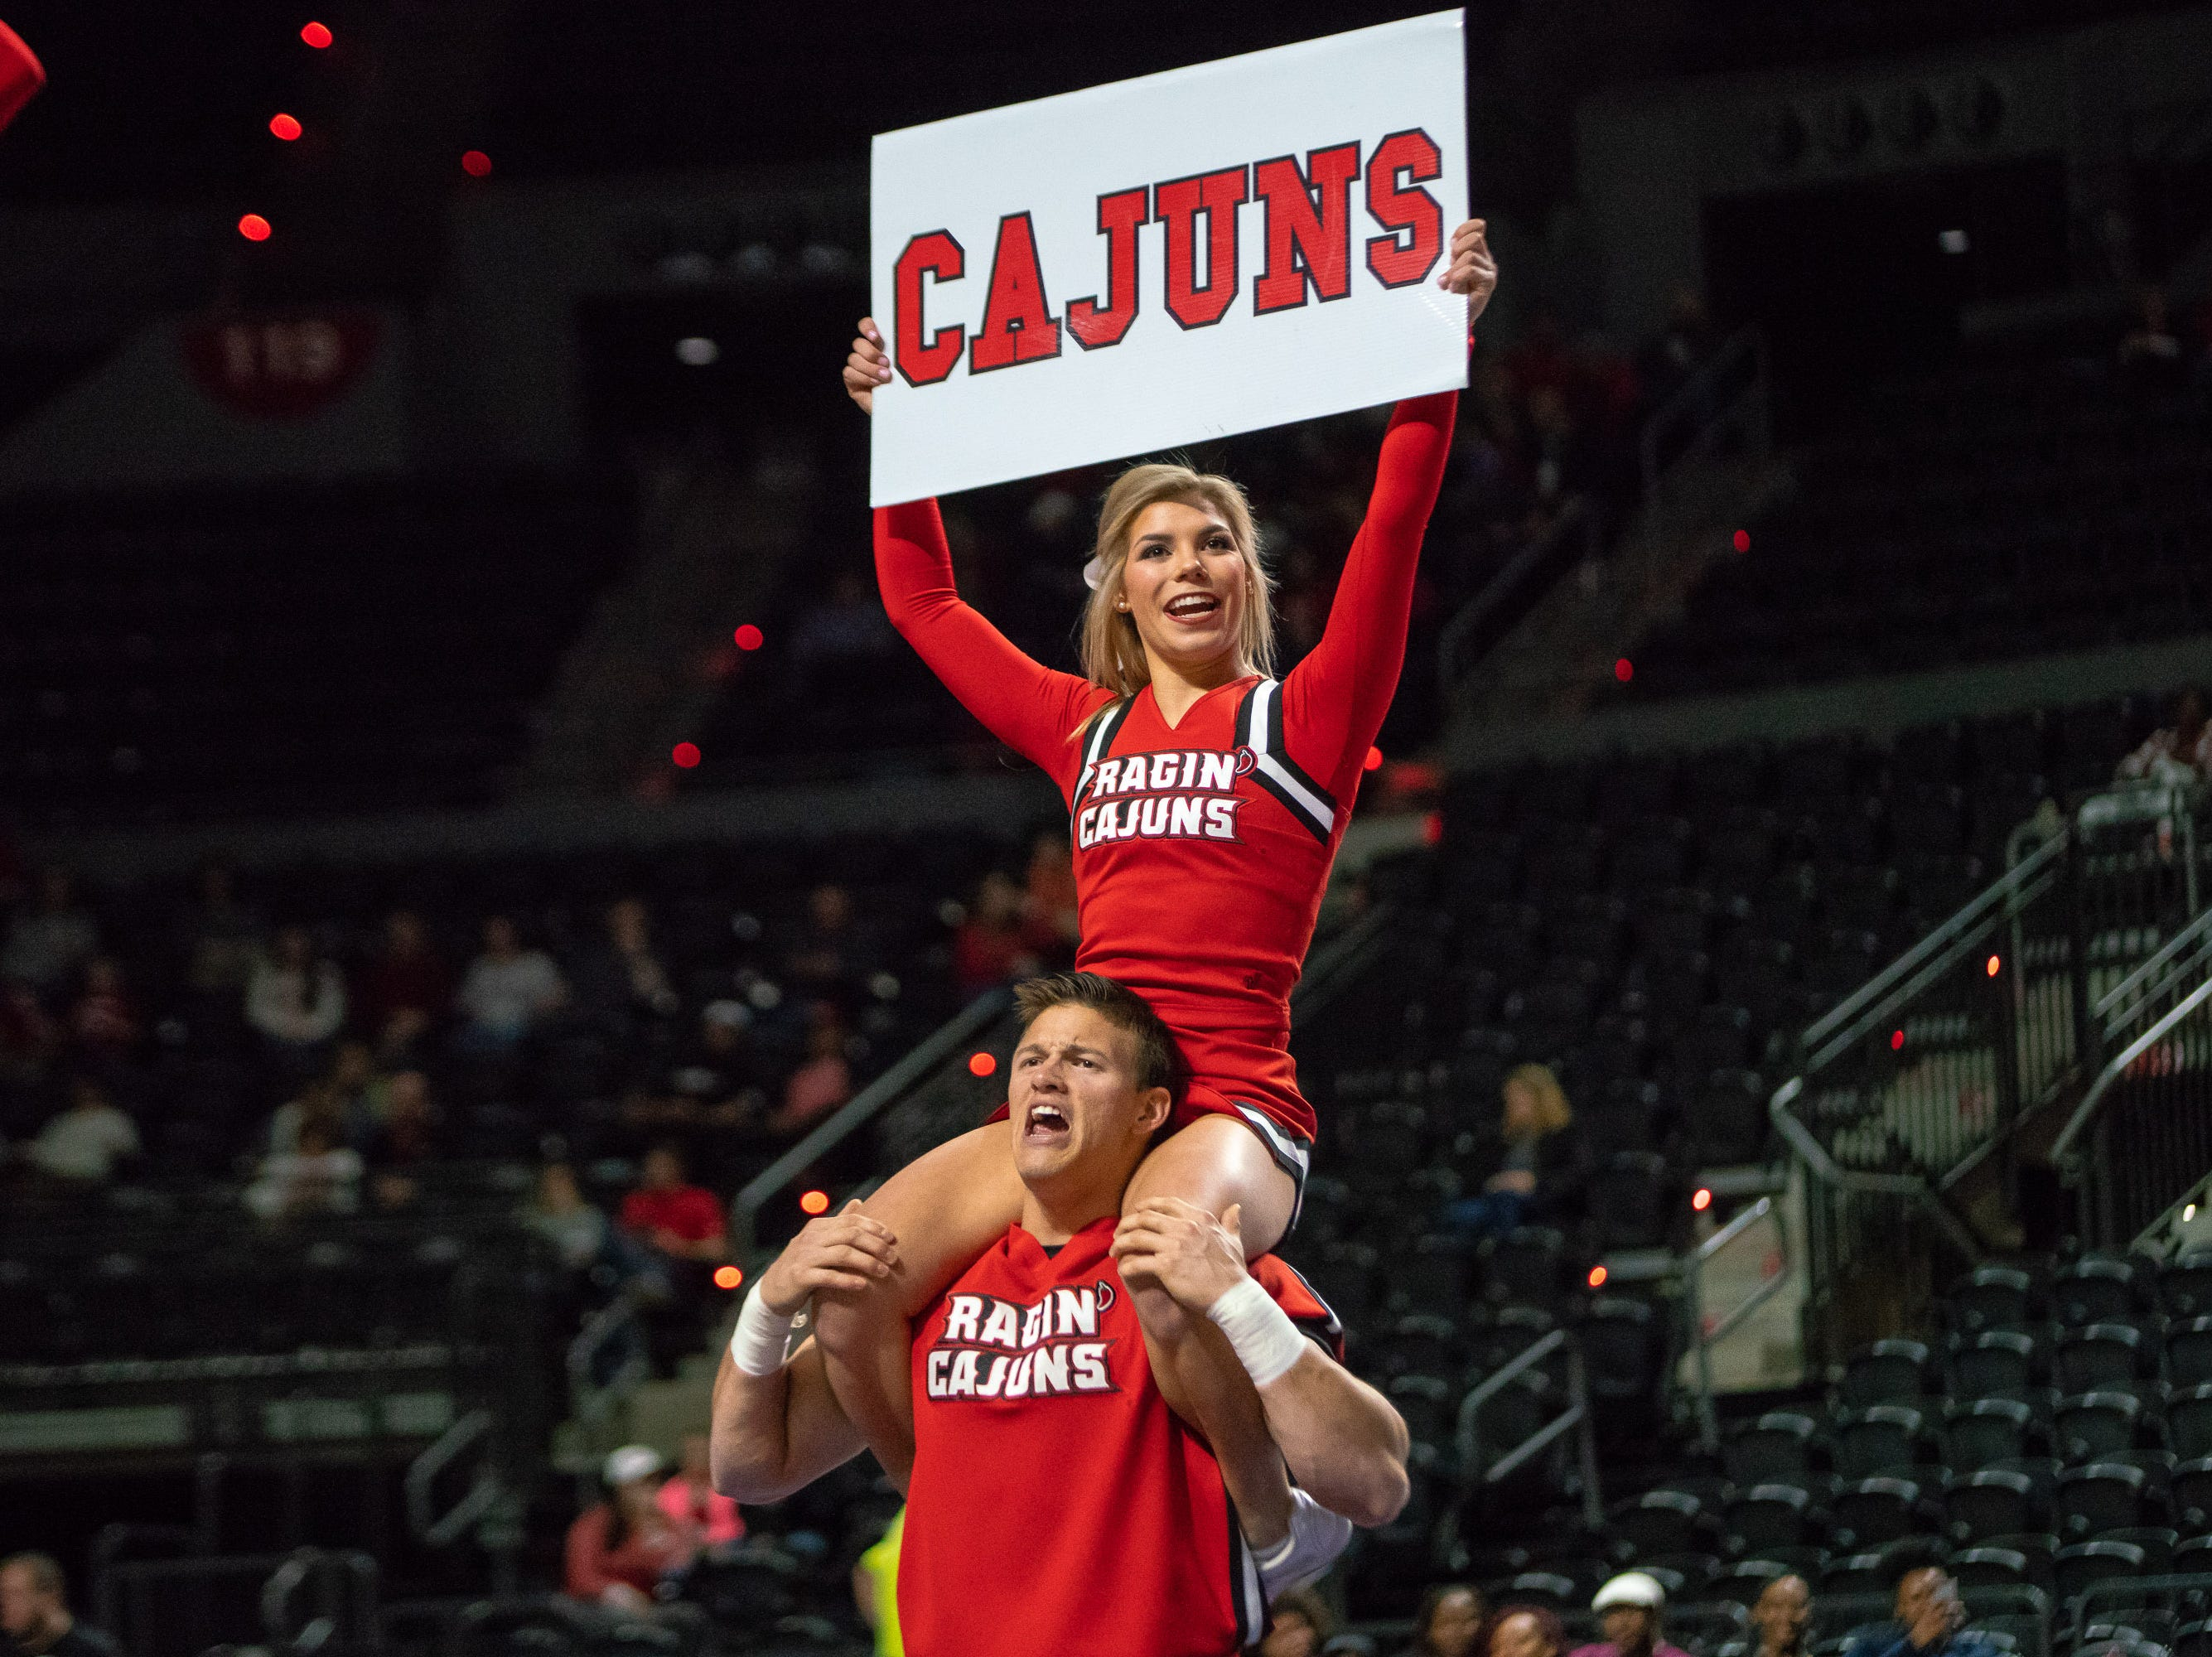 The Ragin' Cajun cheerleaders perform their routine at half-time as the Ragin' Cajuns take on the Little Rock Trojans at the Cajundome on January 5, 2019.